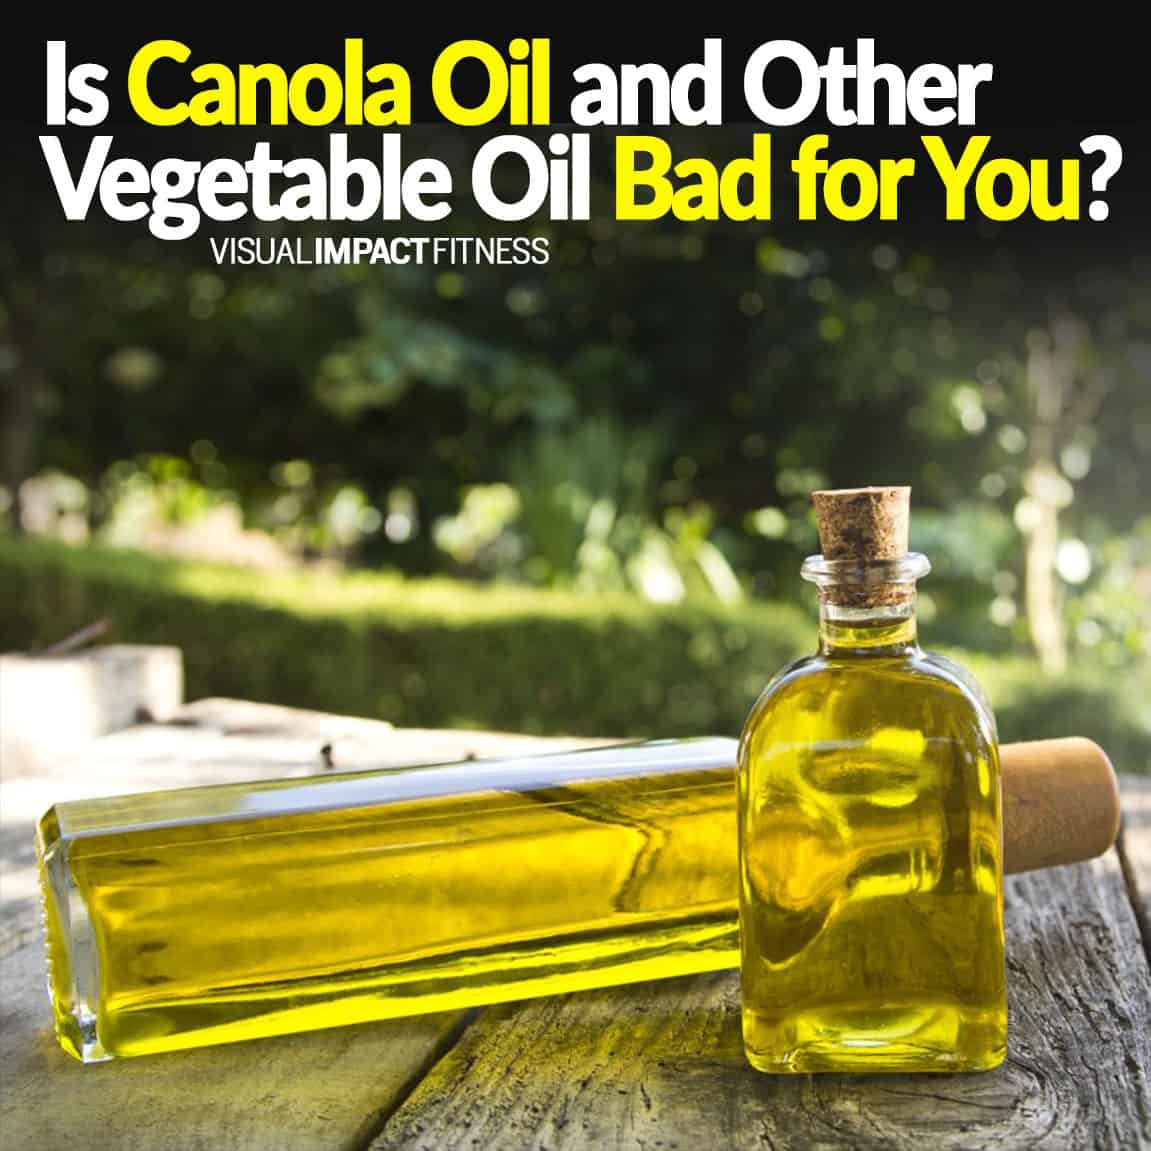 Is Canola Oil and Other Vegetable Oil Bad for You?